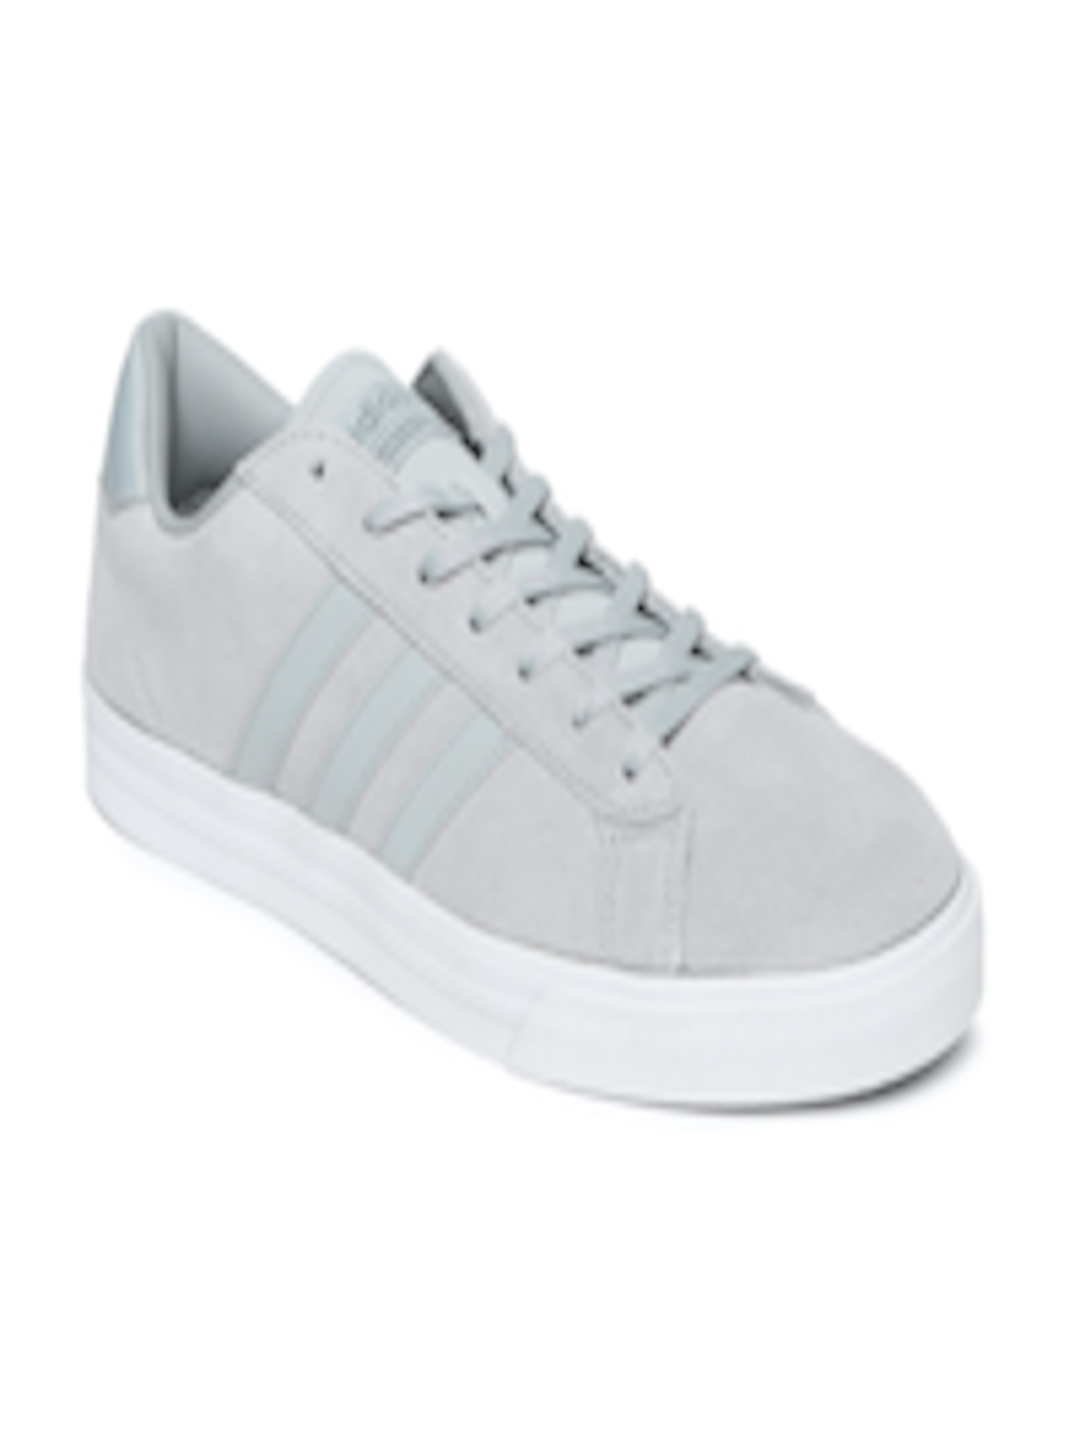 Buy ADIDAS NEO Men Grey Leather Cloudfoam Super Daily Sneakers - Casual  Shoes for Men 1731092  0718f772f